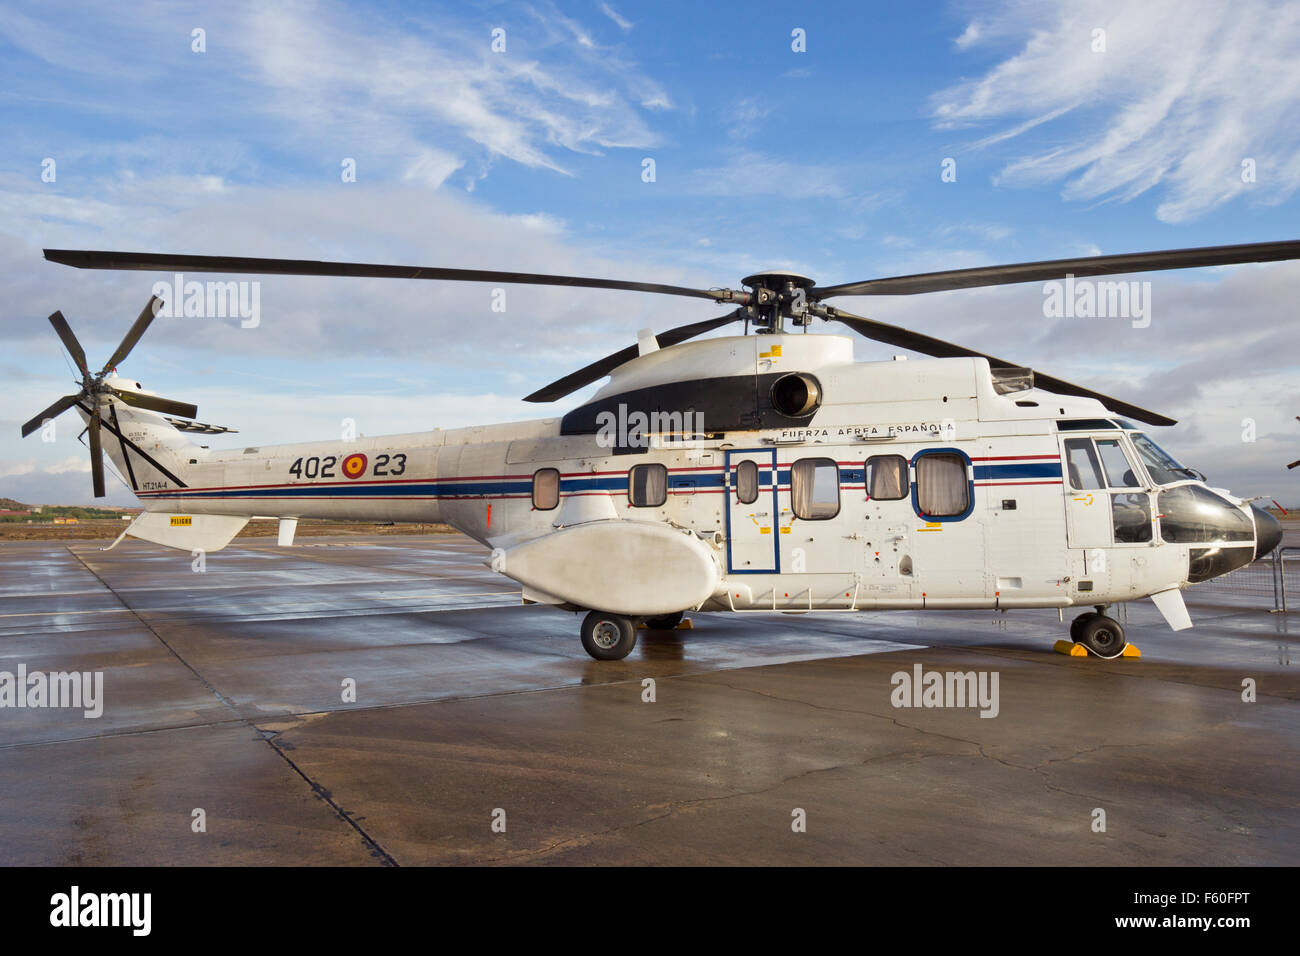 Spanish air force Eurocopter Cougar VIP helicopter - Stock Image